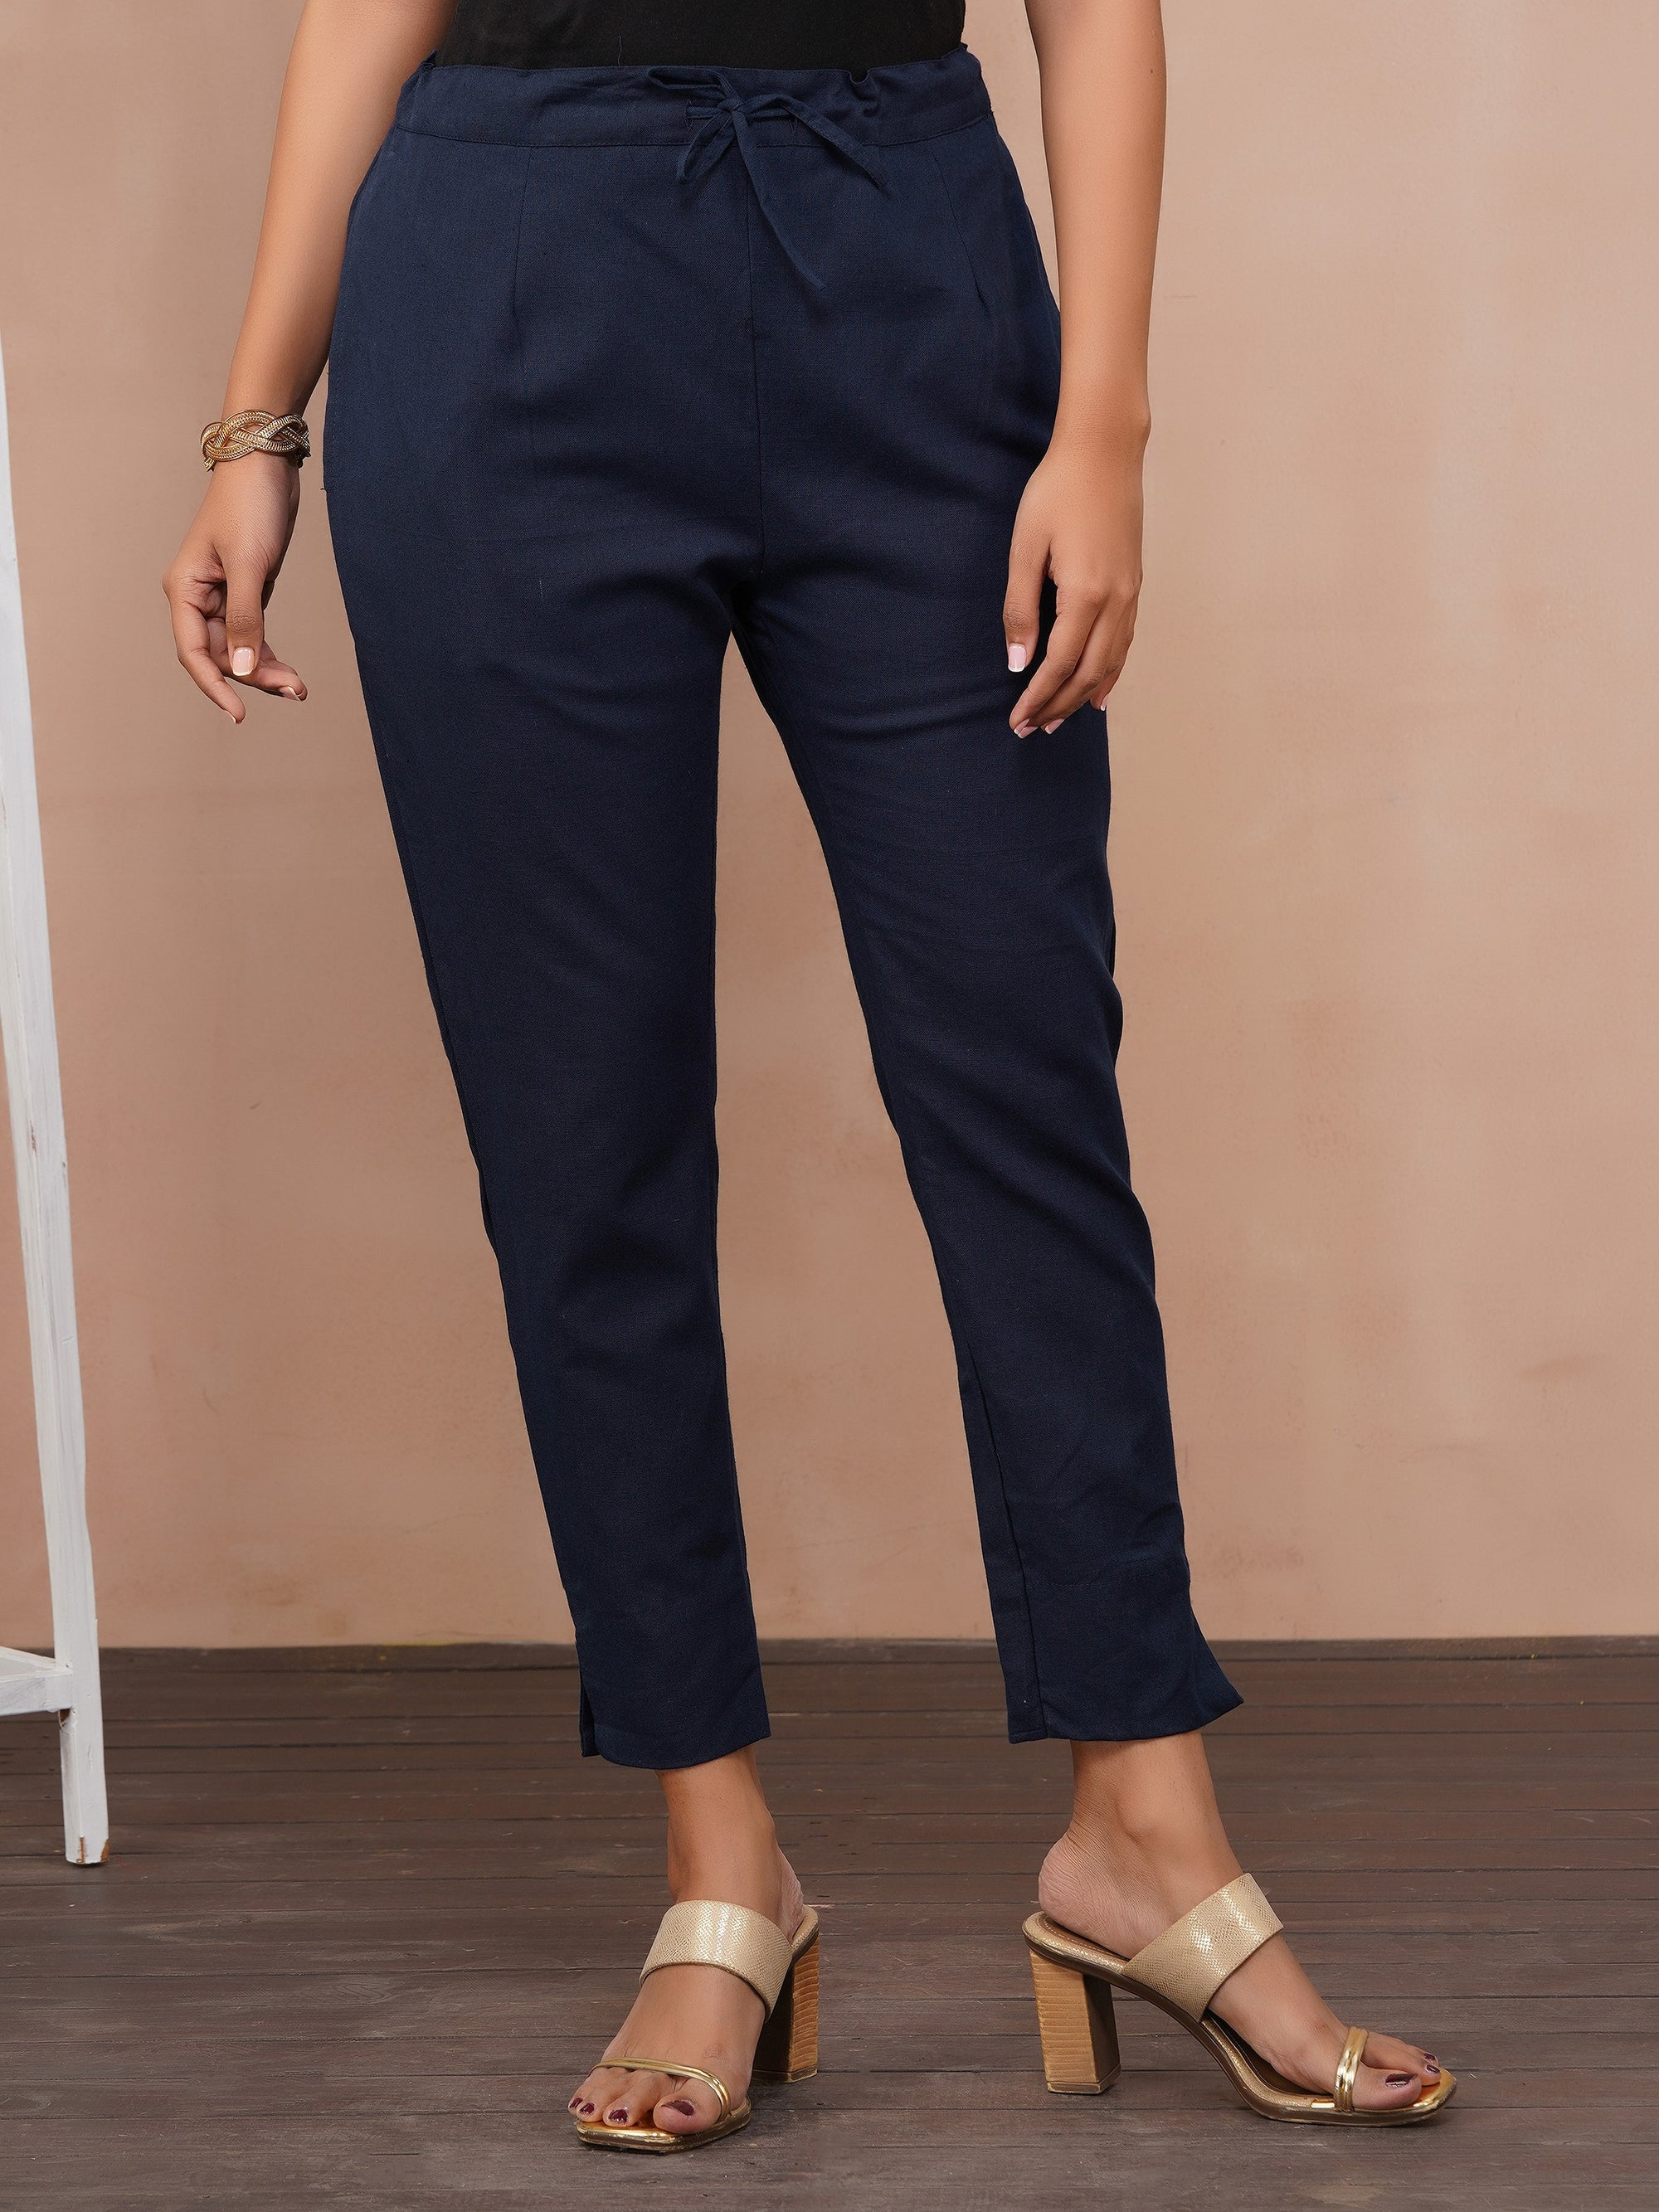 Solid Handloom Straight Fit Pant – Navy Blue